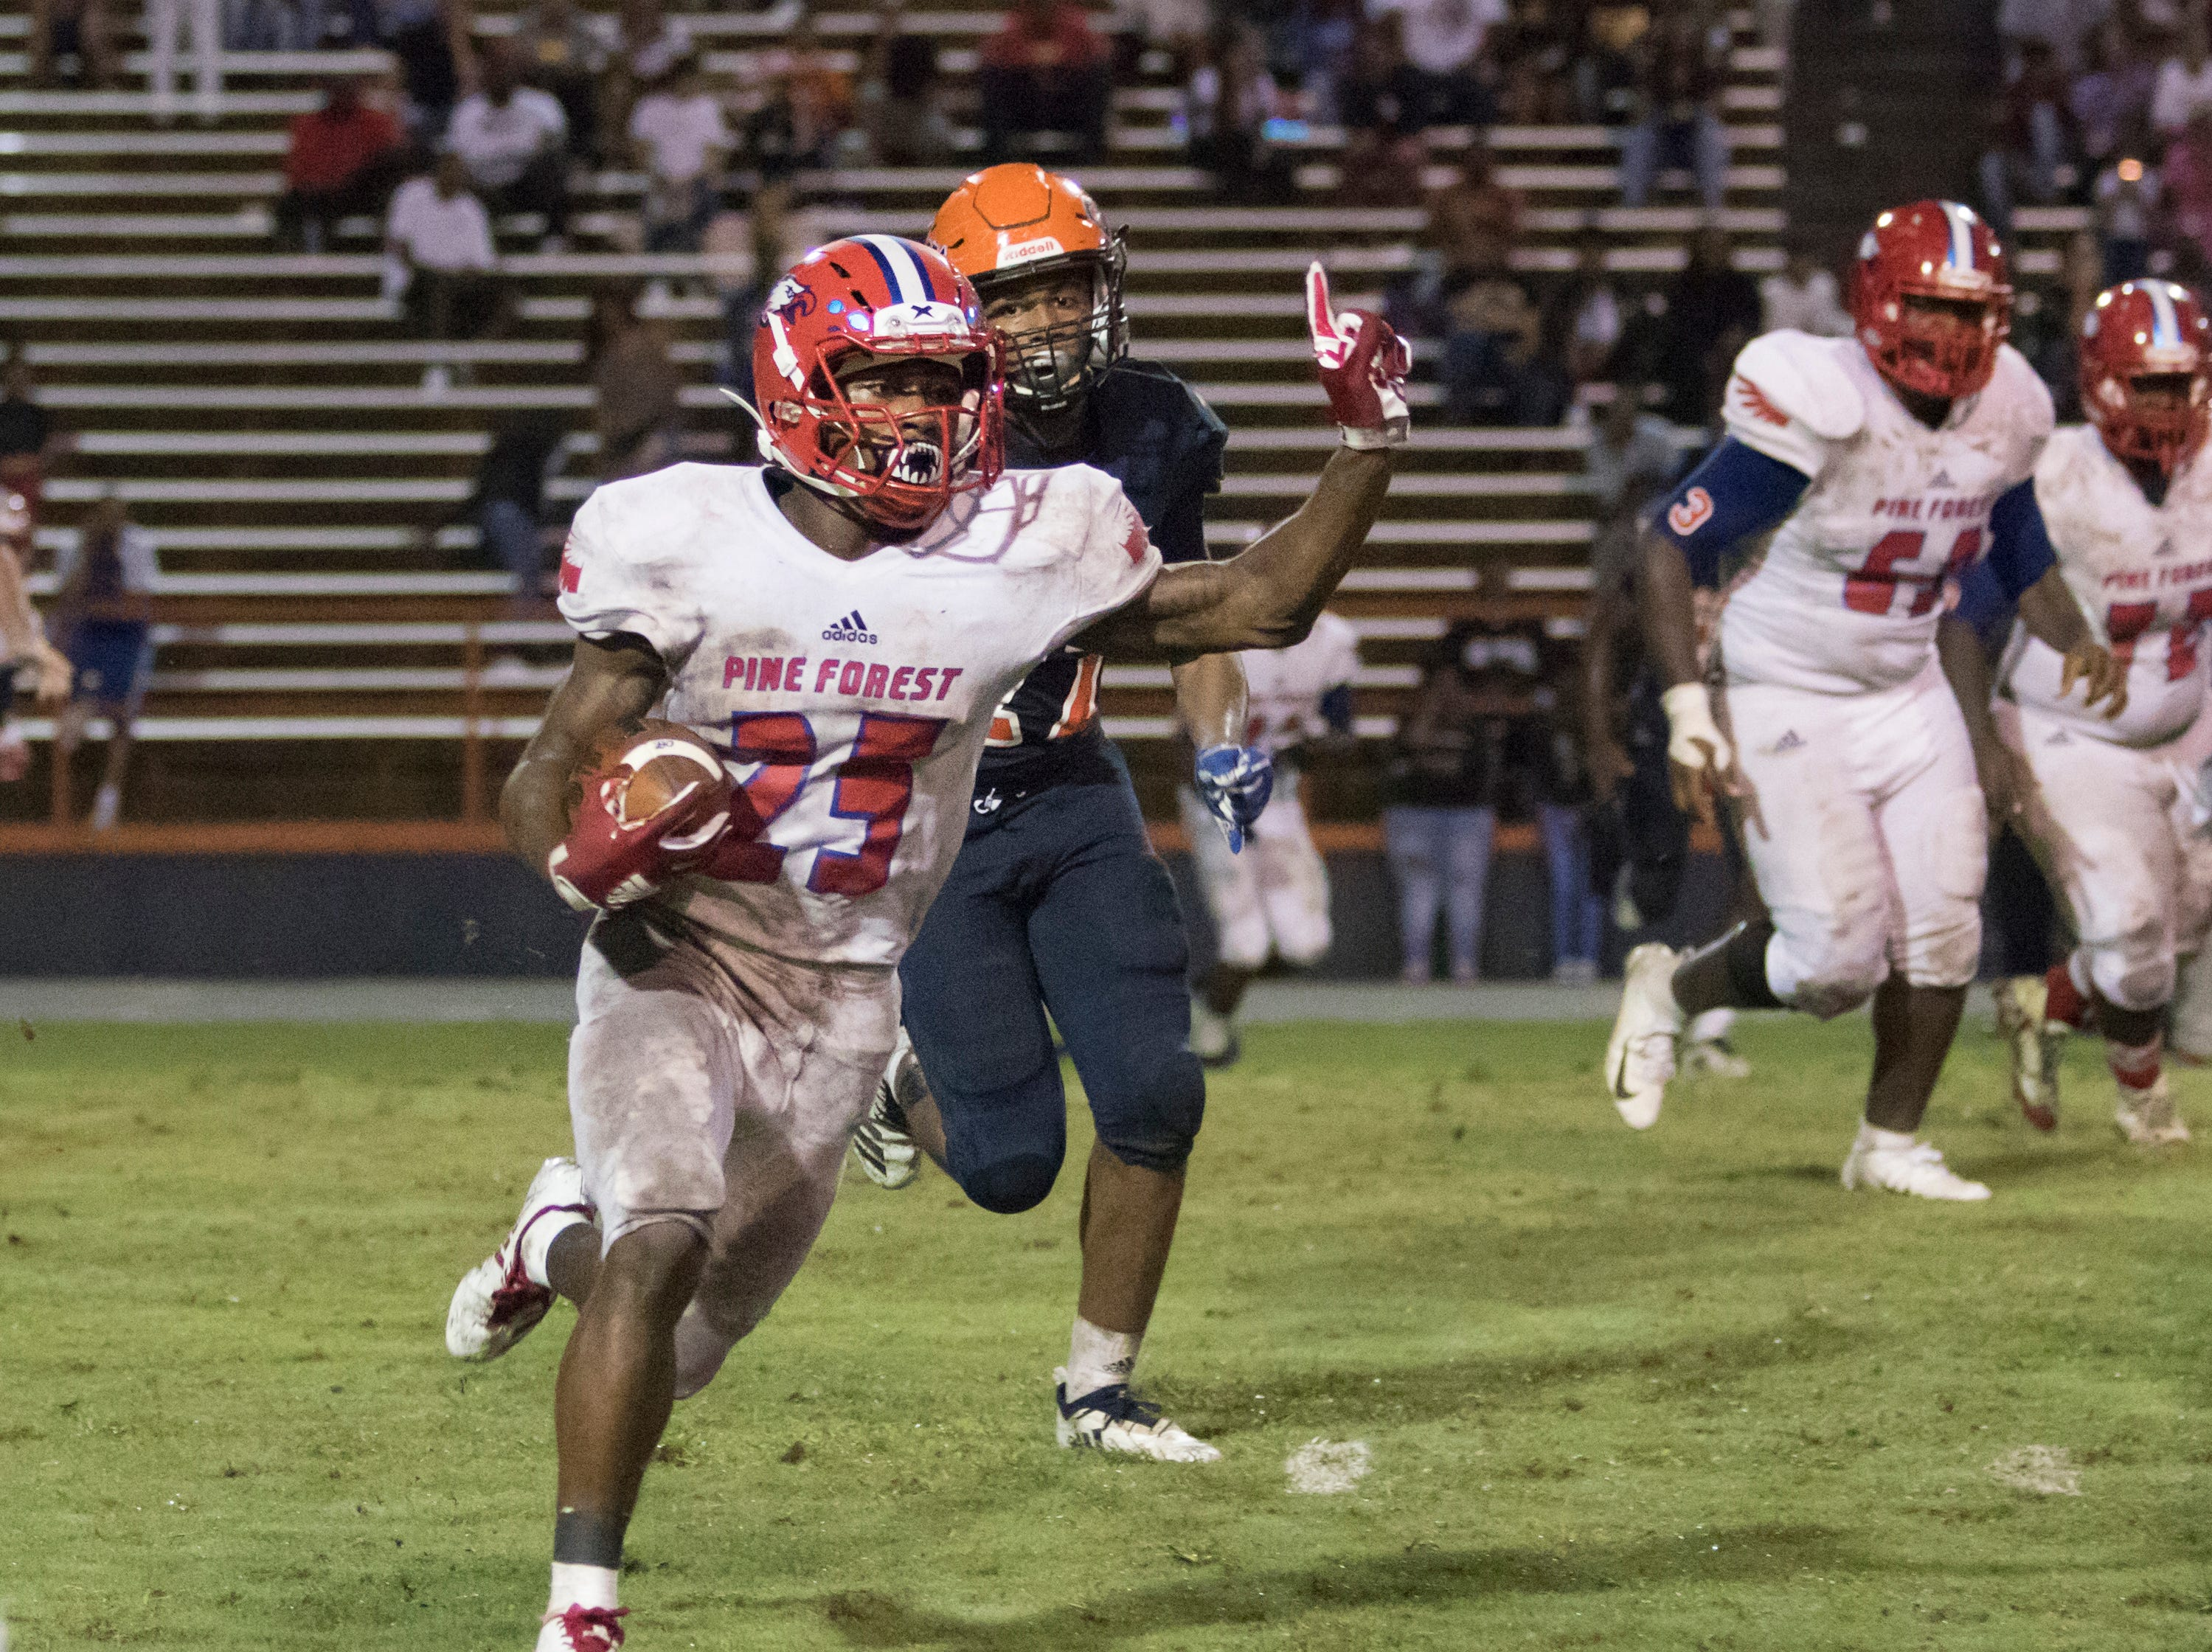 Anwar Lewis (25) directs his blockers as he runs the ball during the Pine Forest vs Escambia football game at Escambia High School in Pensacola on Friday, September 28, 2018.